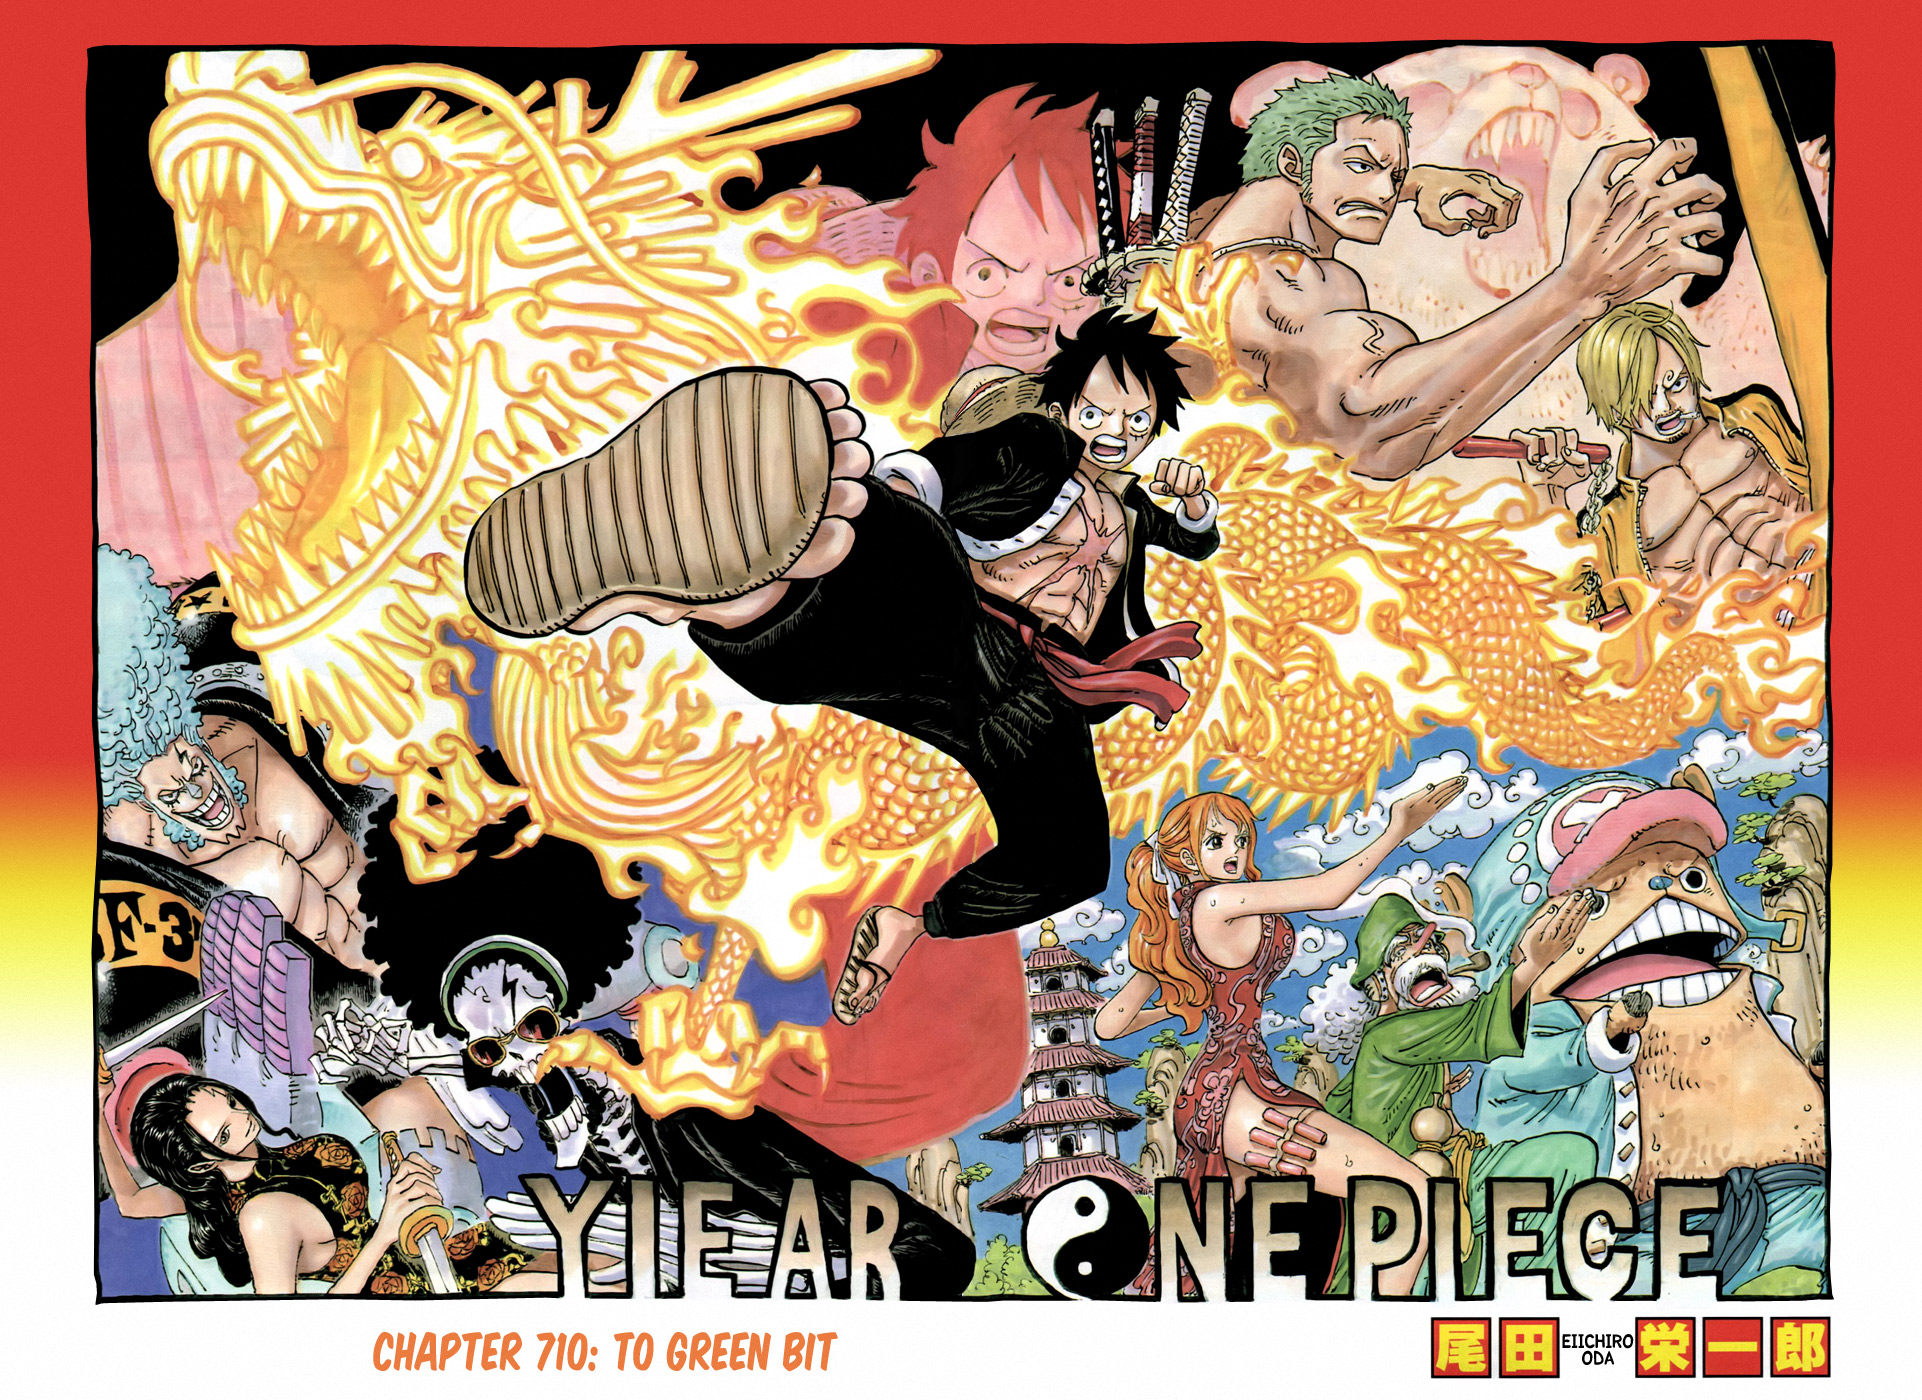 One Piece Dominates 2014 Manga Sales in Japan for a Sixth Year in a Row haruhichan.com one piece chapter 710 spread